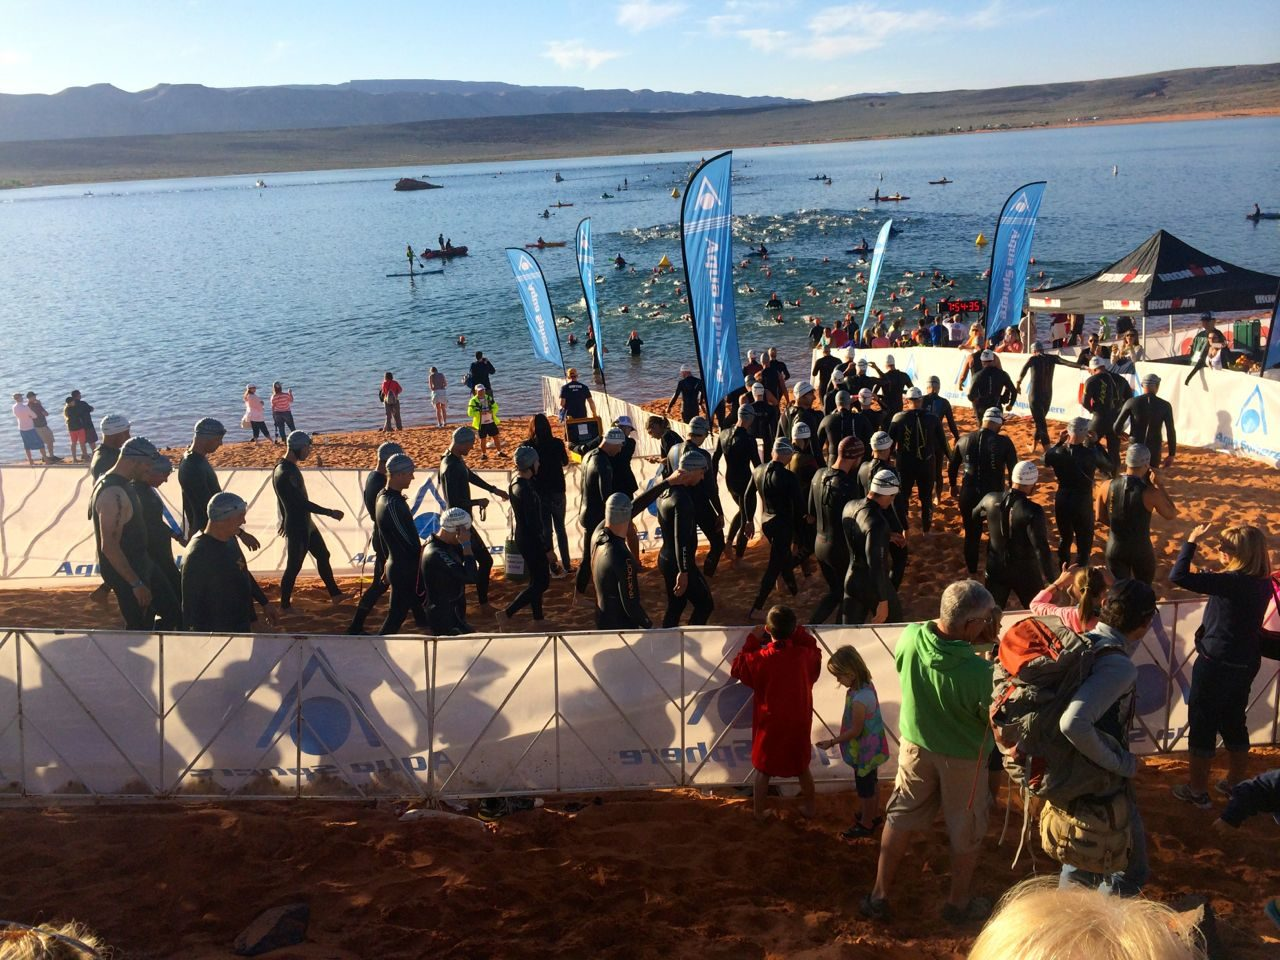 Athletes enter the water at Ironman 70.3 St. George 2015